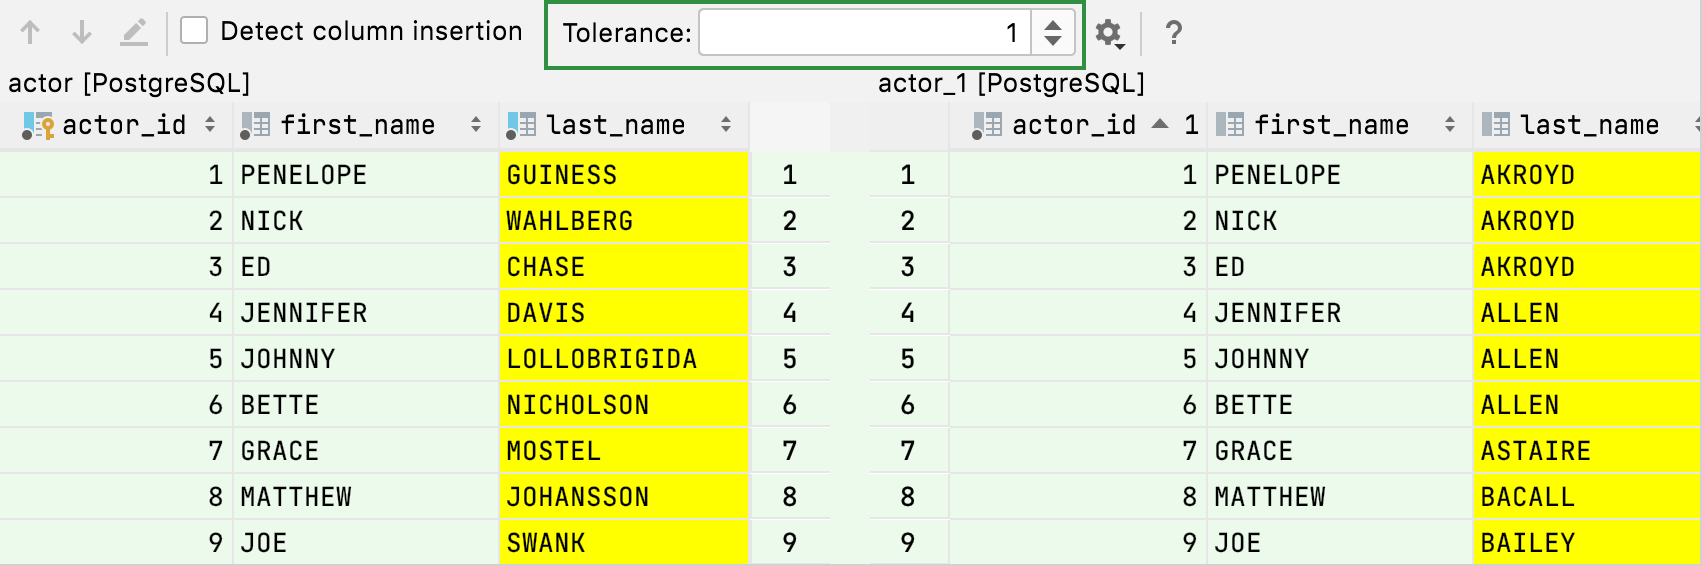 columns differ when rows contain different data